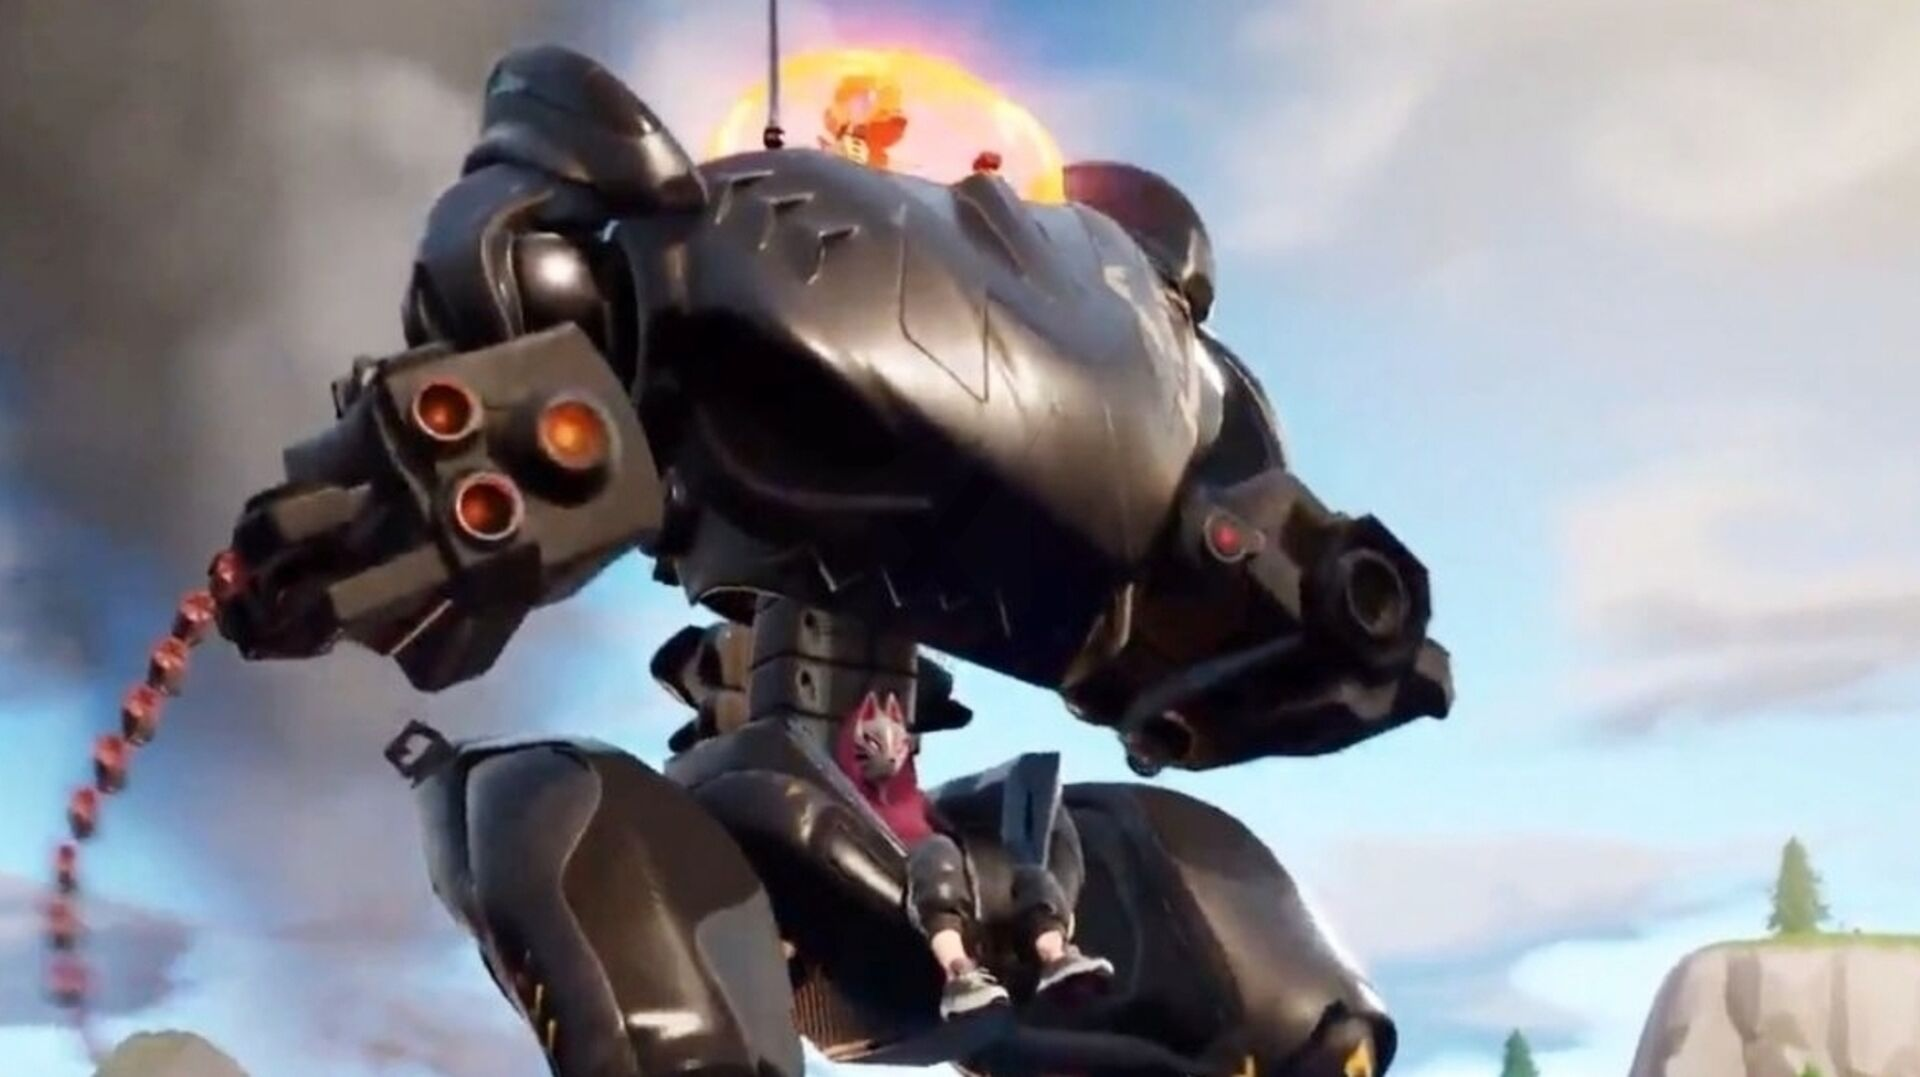 Now Epic drastically reduces chance Fortnite's hated mechs will